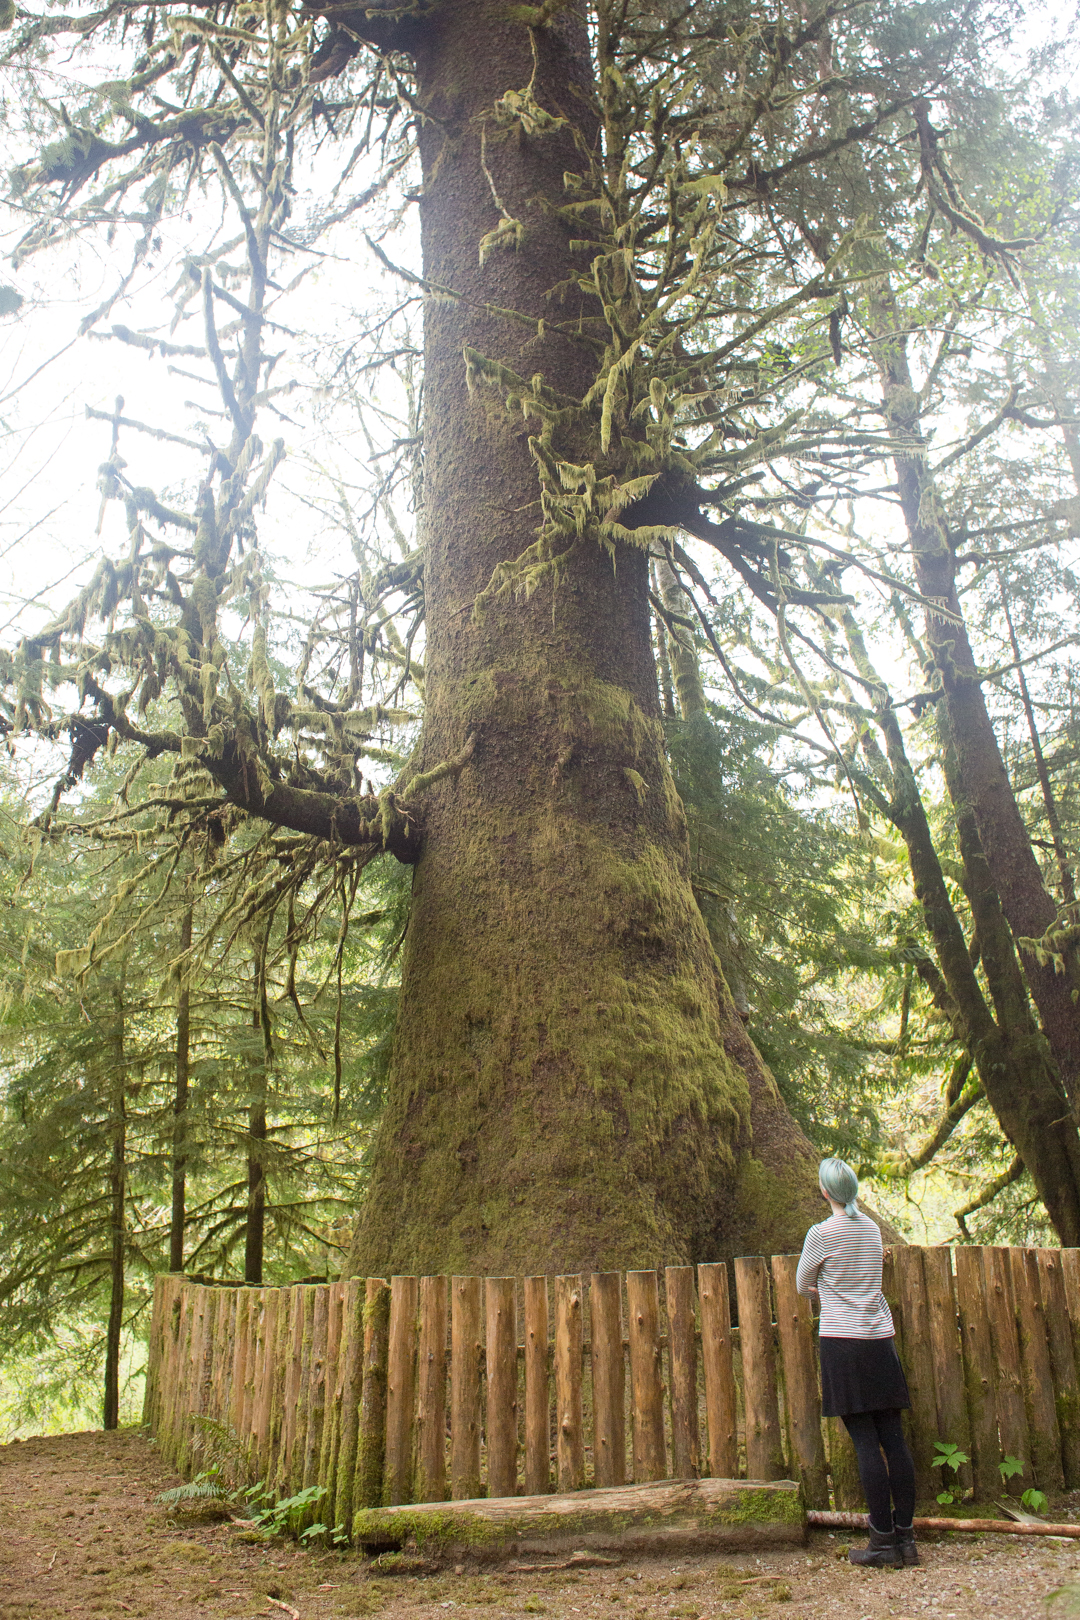 The Harris Sitka Spruce, found on the road from Port Renfrew to Lake Cowichan, on Vancouver Island